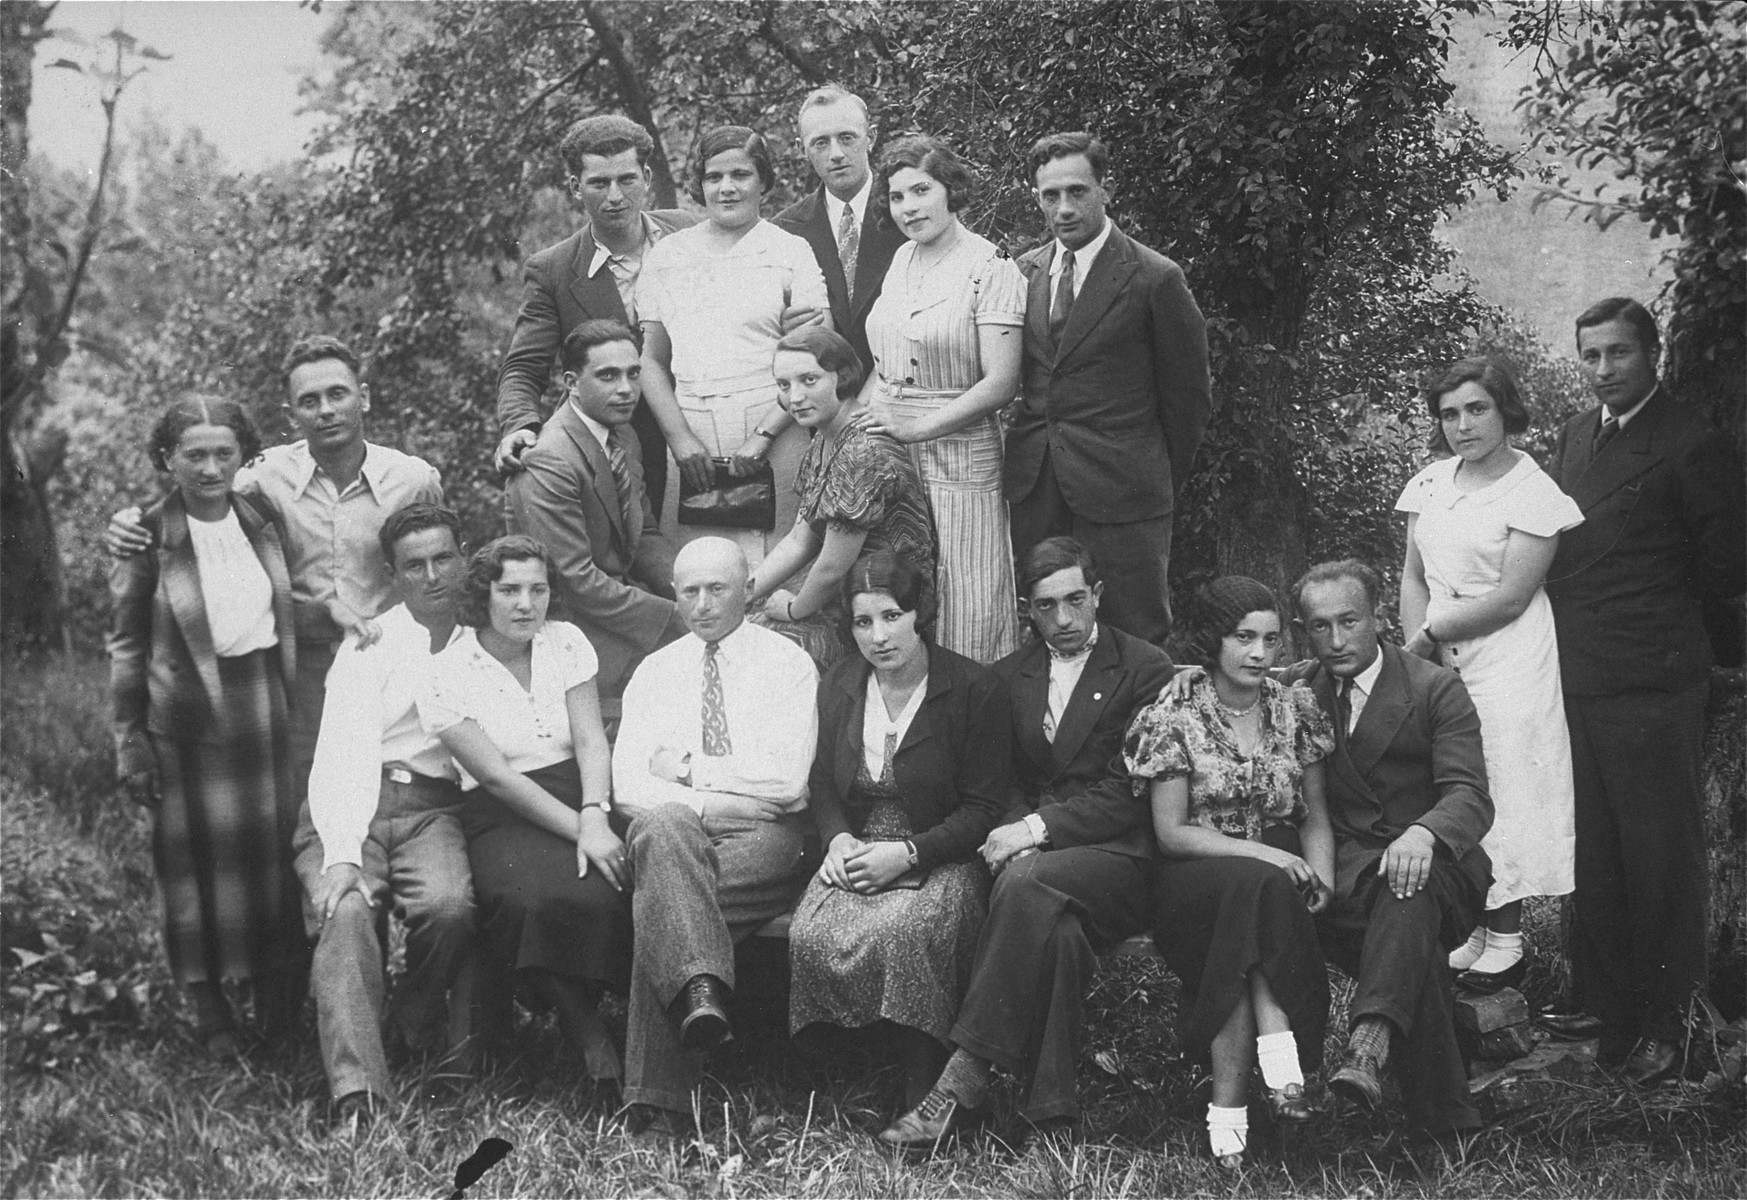 Group portrait of young Jewish men and women involved in the Zionist movement in Lithuania.  Eliezer Kaplan is pictured sitting in the front row, third from the right.